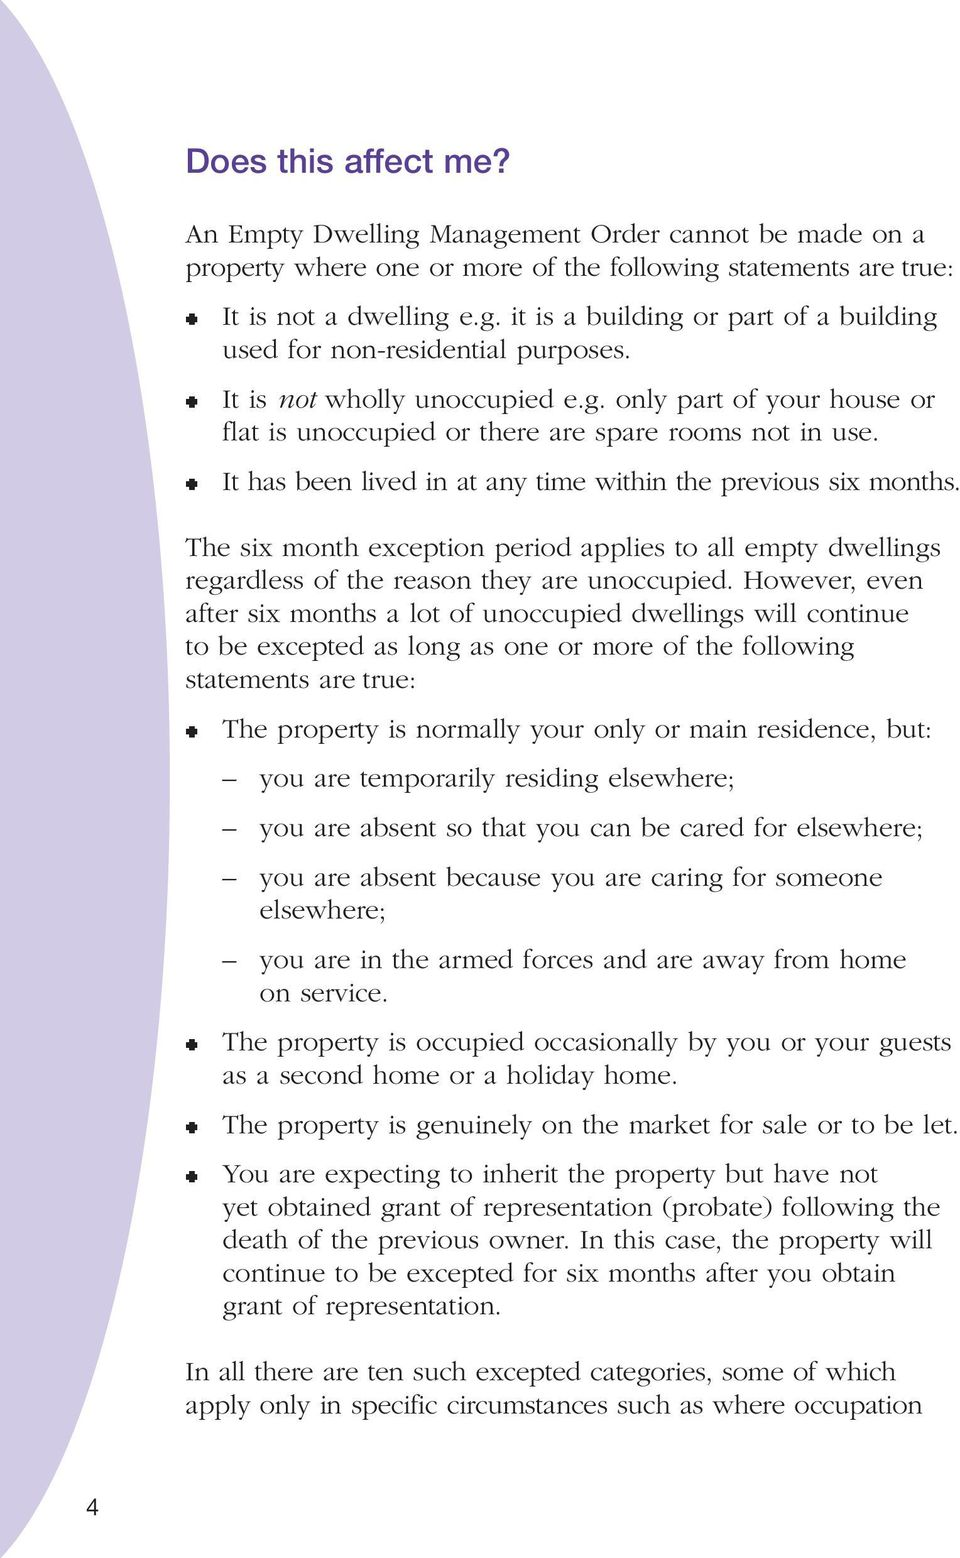 The six month exception period applies to all empty dwellings regardless of the reason they are unoccupied.